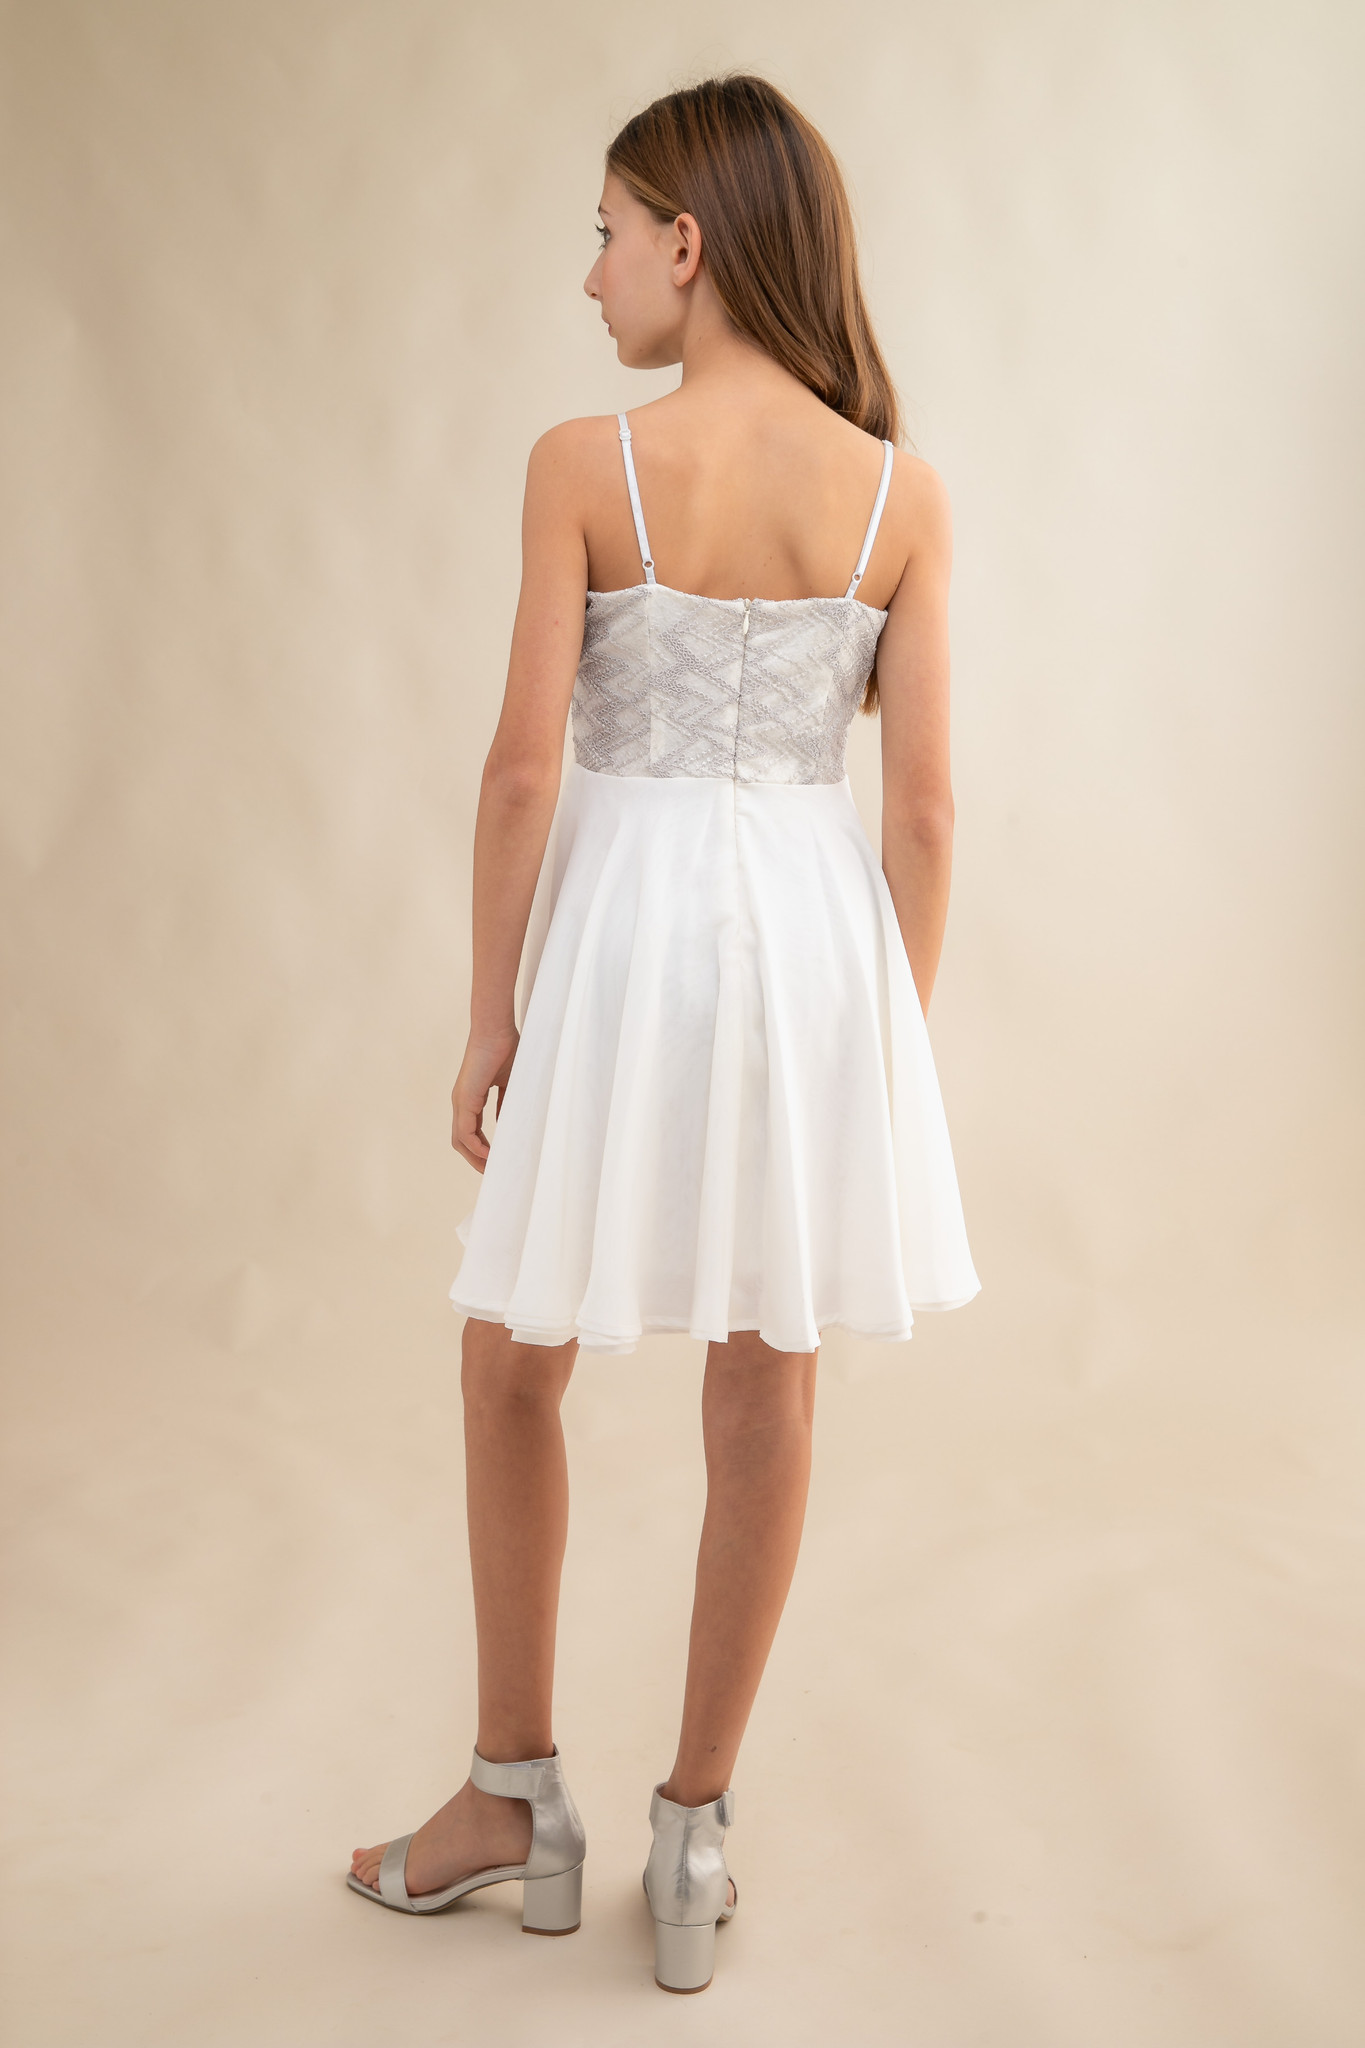 Tween Girls Ivory and Silver Chiffon Dress with Sequins in Longer Length back view.